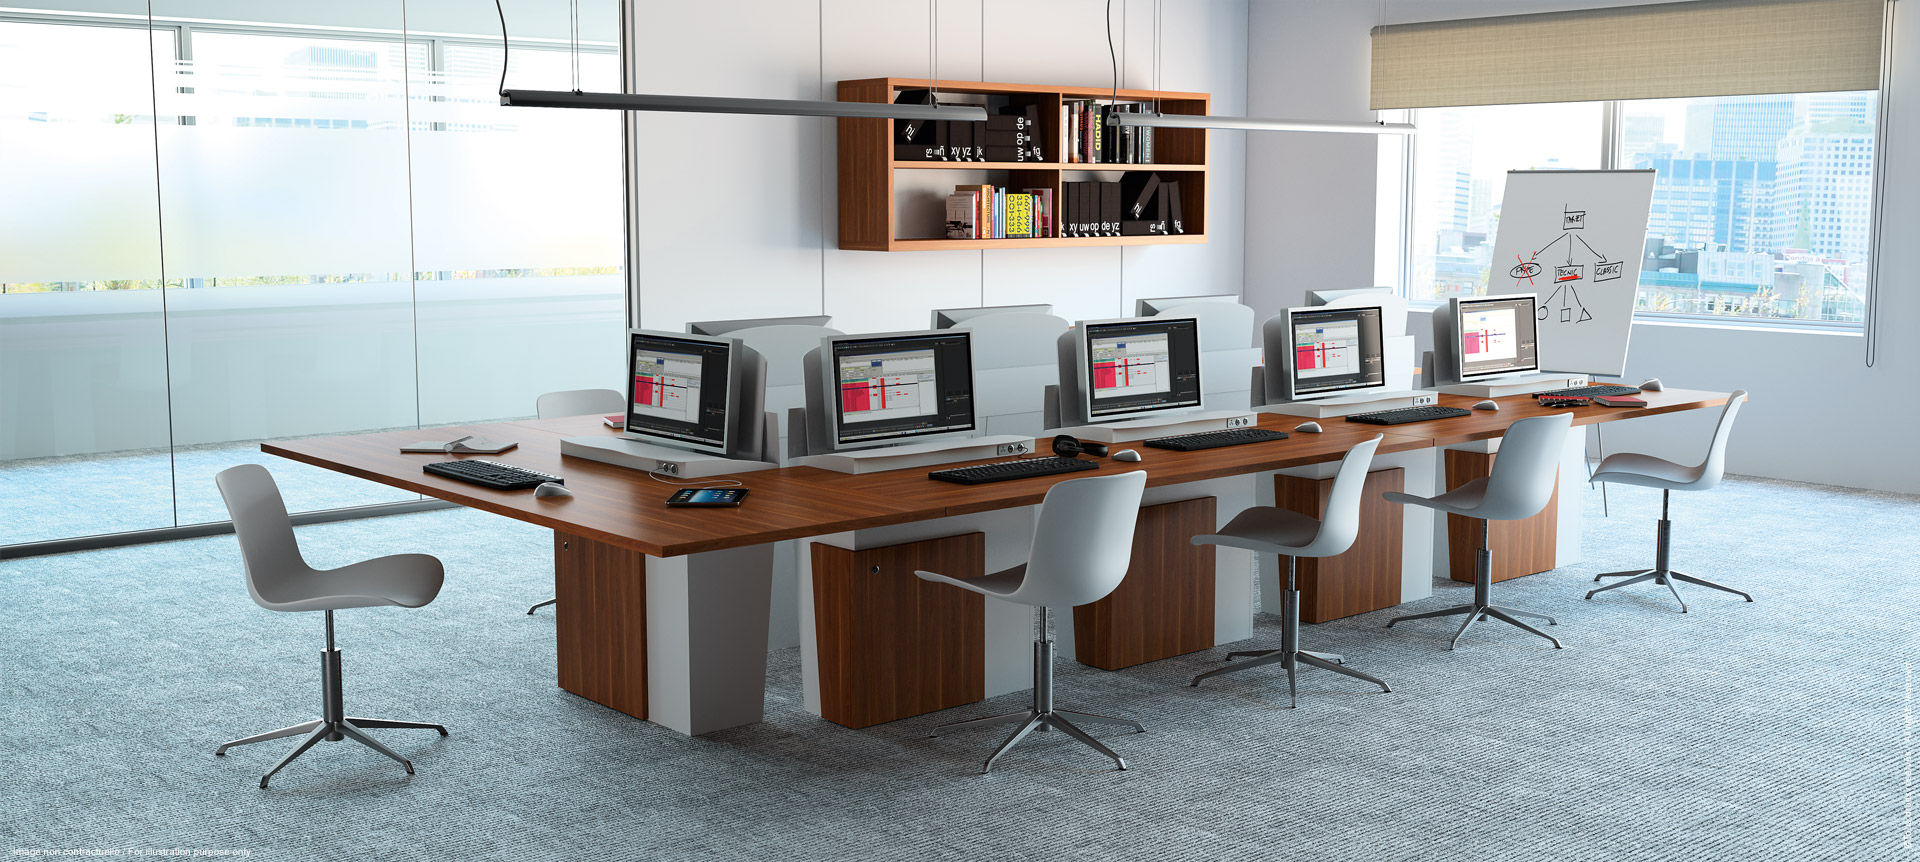 I-Rise - All-purpose table for meeting, training or crisis management